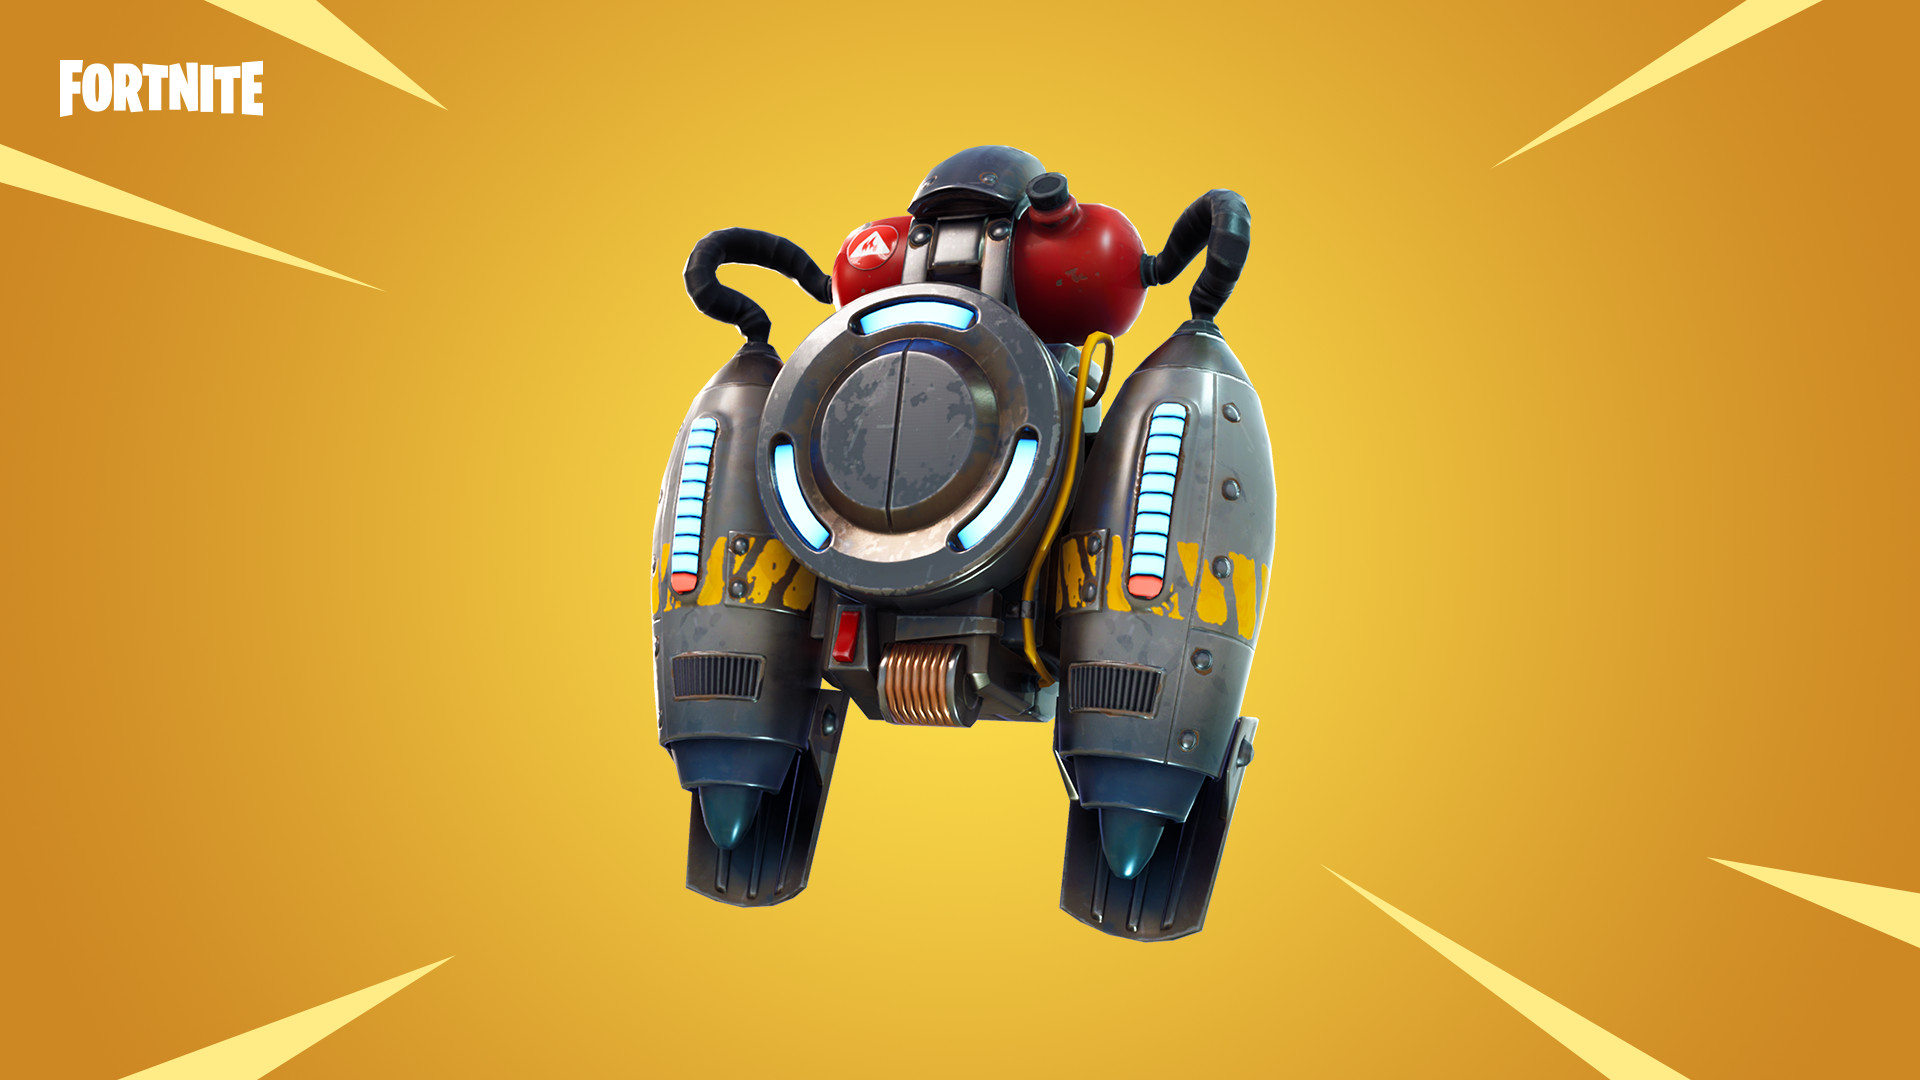 Photo of Fortnite 4.2 introduces sky high battles thanks to the new Jetpack item